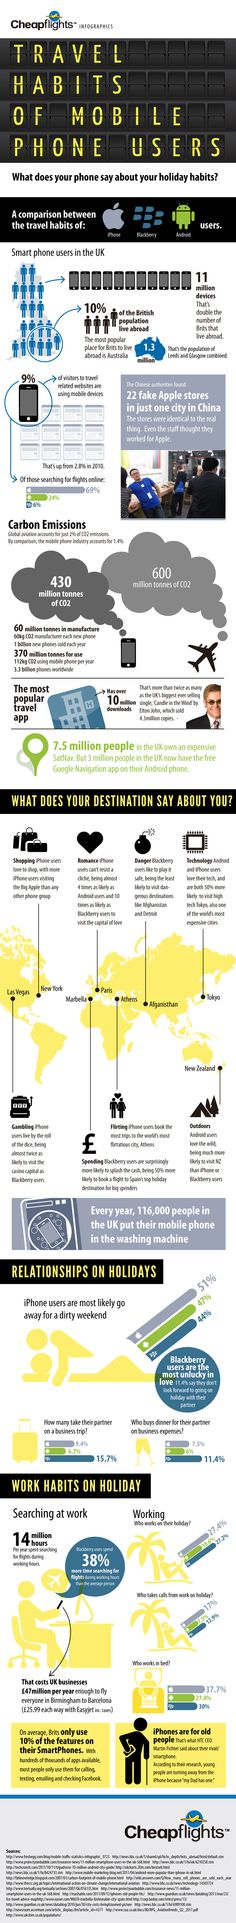 Travel Habits of Mobile Phone Users [INFOGRAPHIC]  #Travel  #MobilePhone  #Infographic